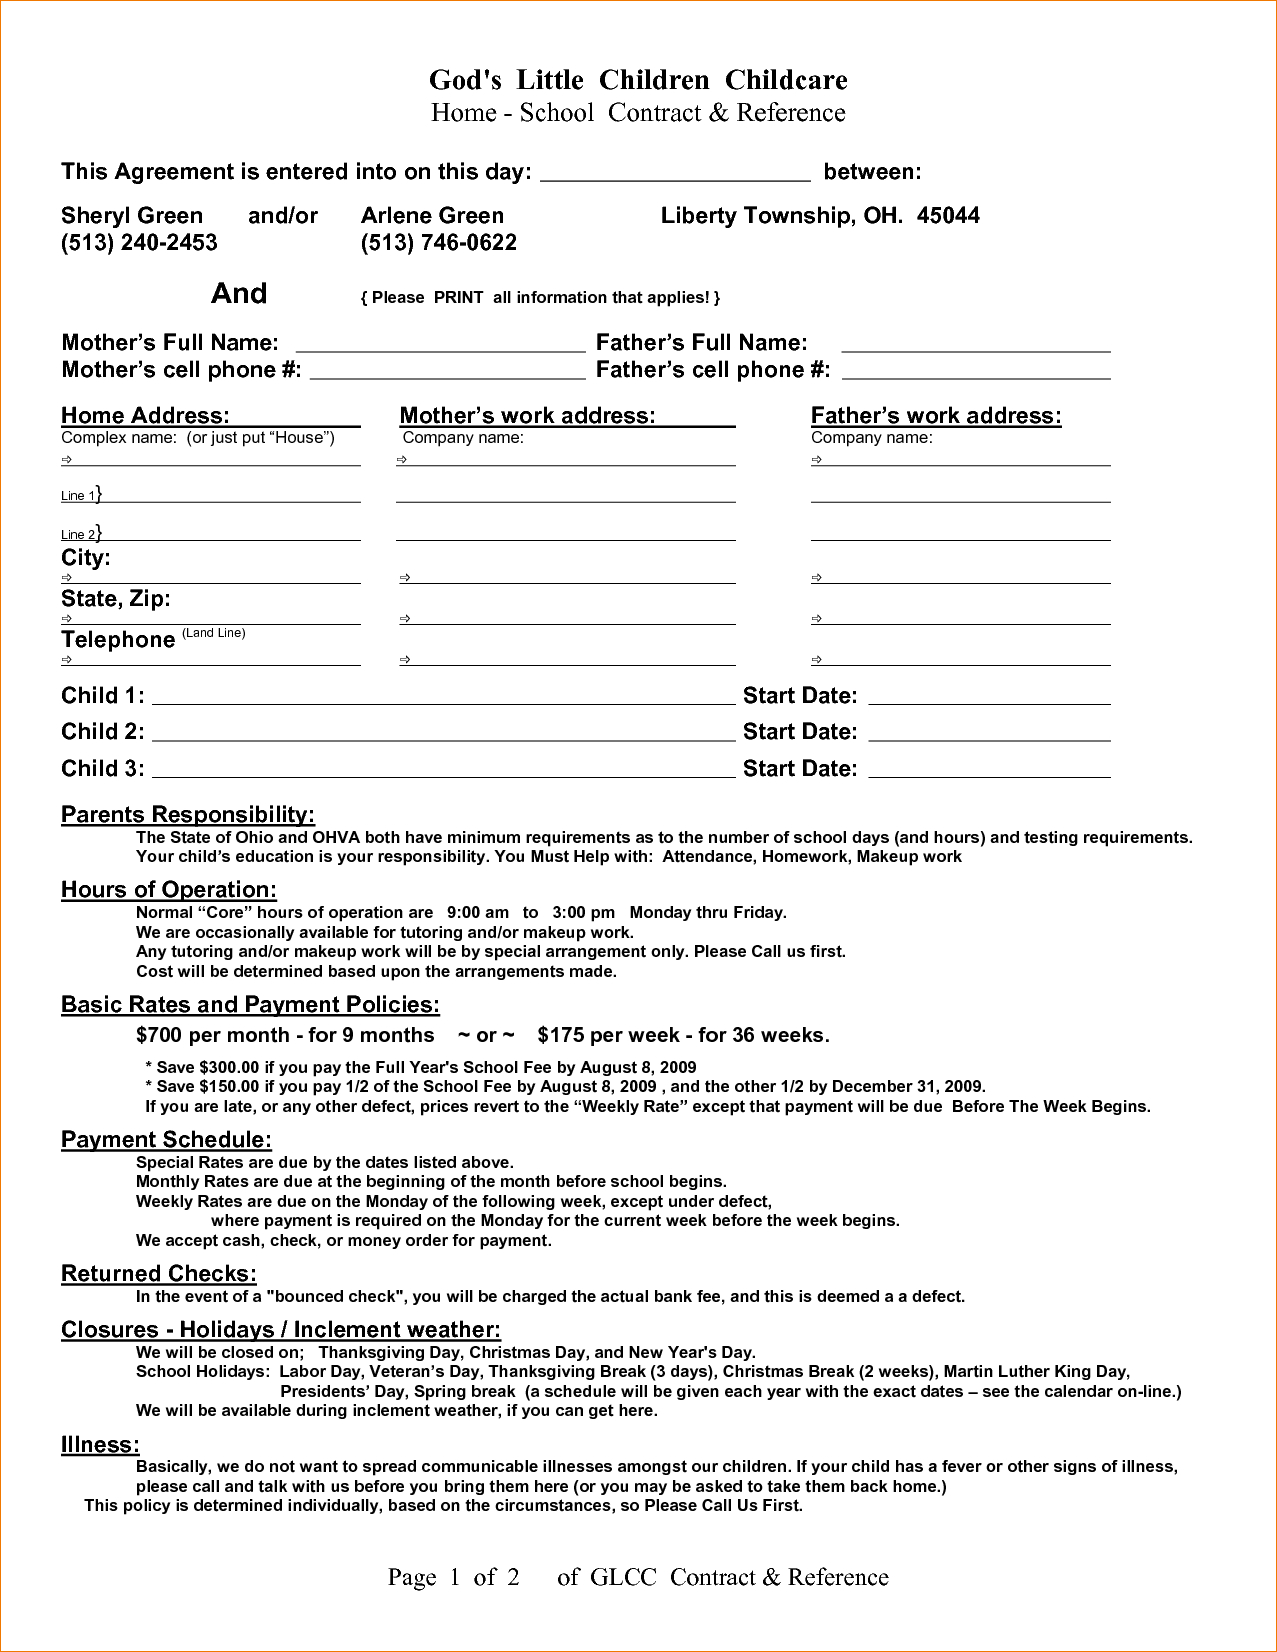 Home Daycare Contract Handbook | Childcare Ideas | Daycare Contract - Free Printable Daycare Forms For Parents